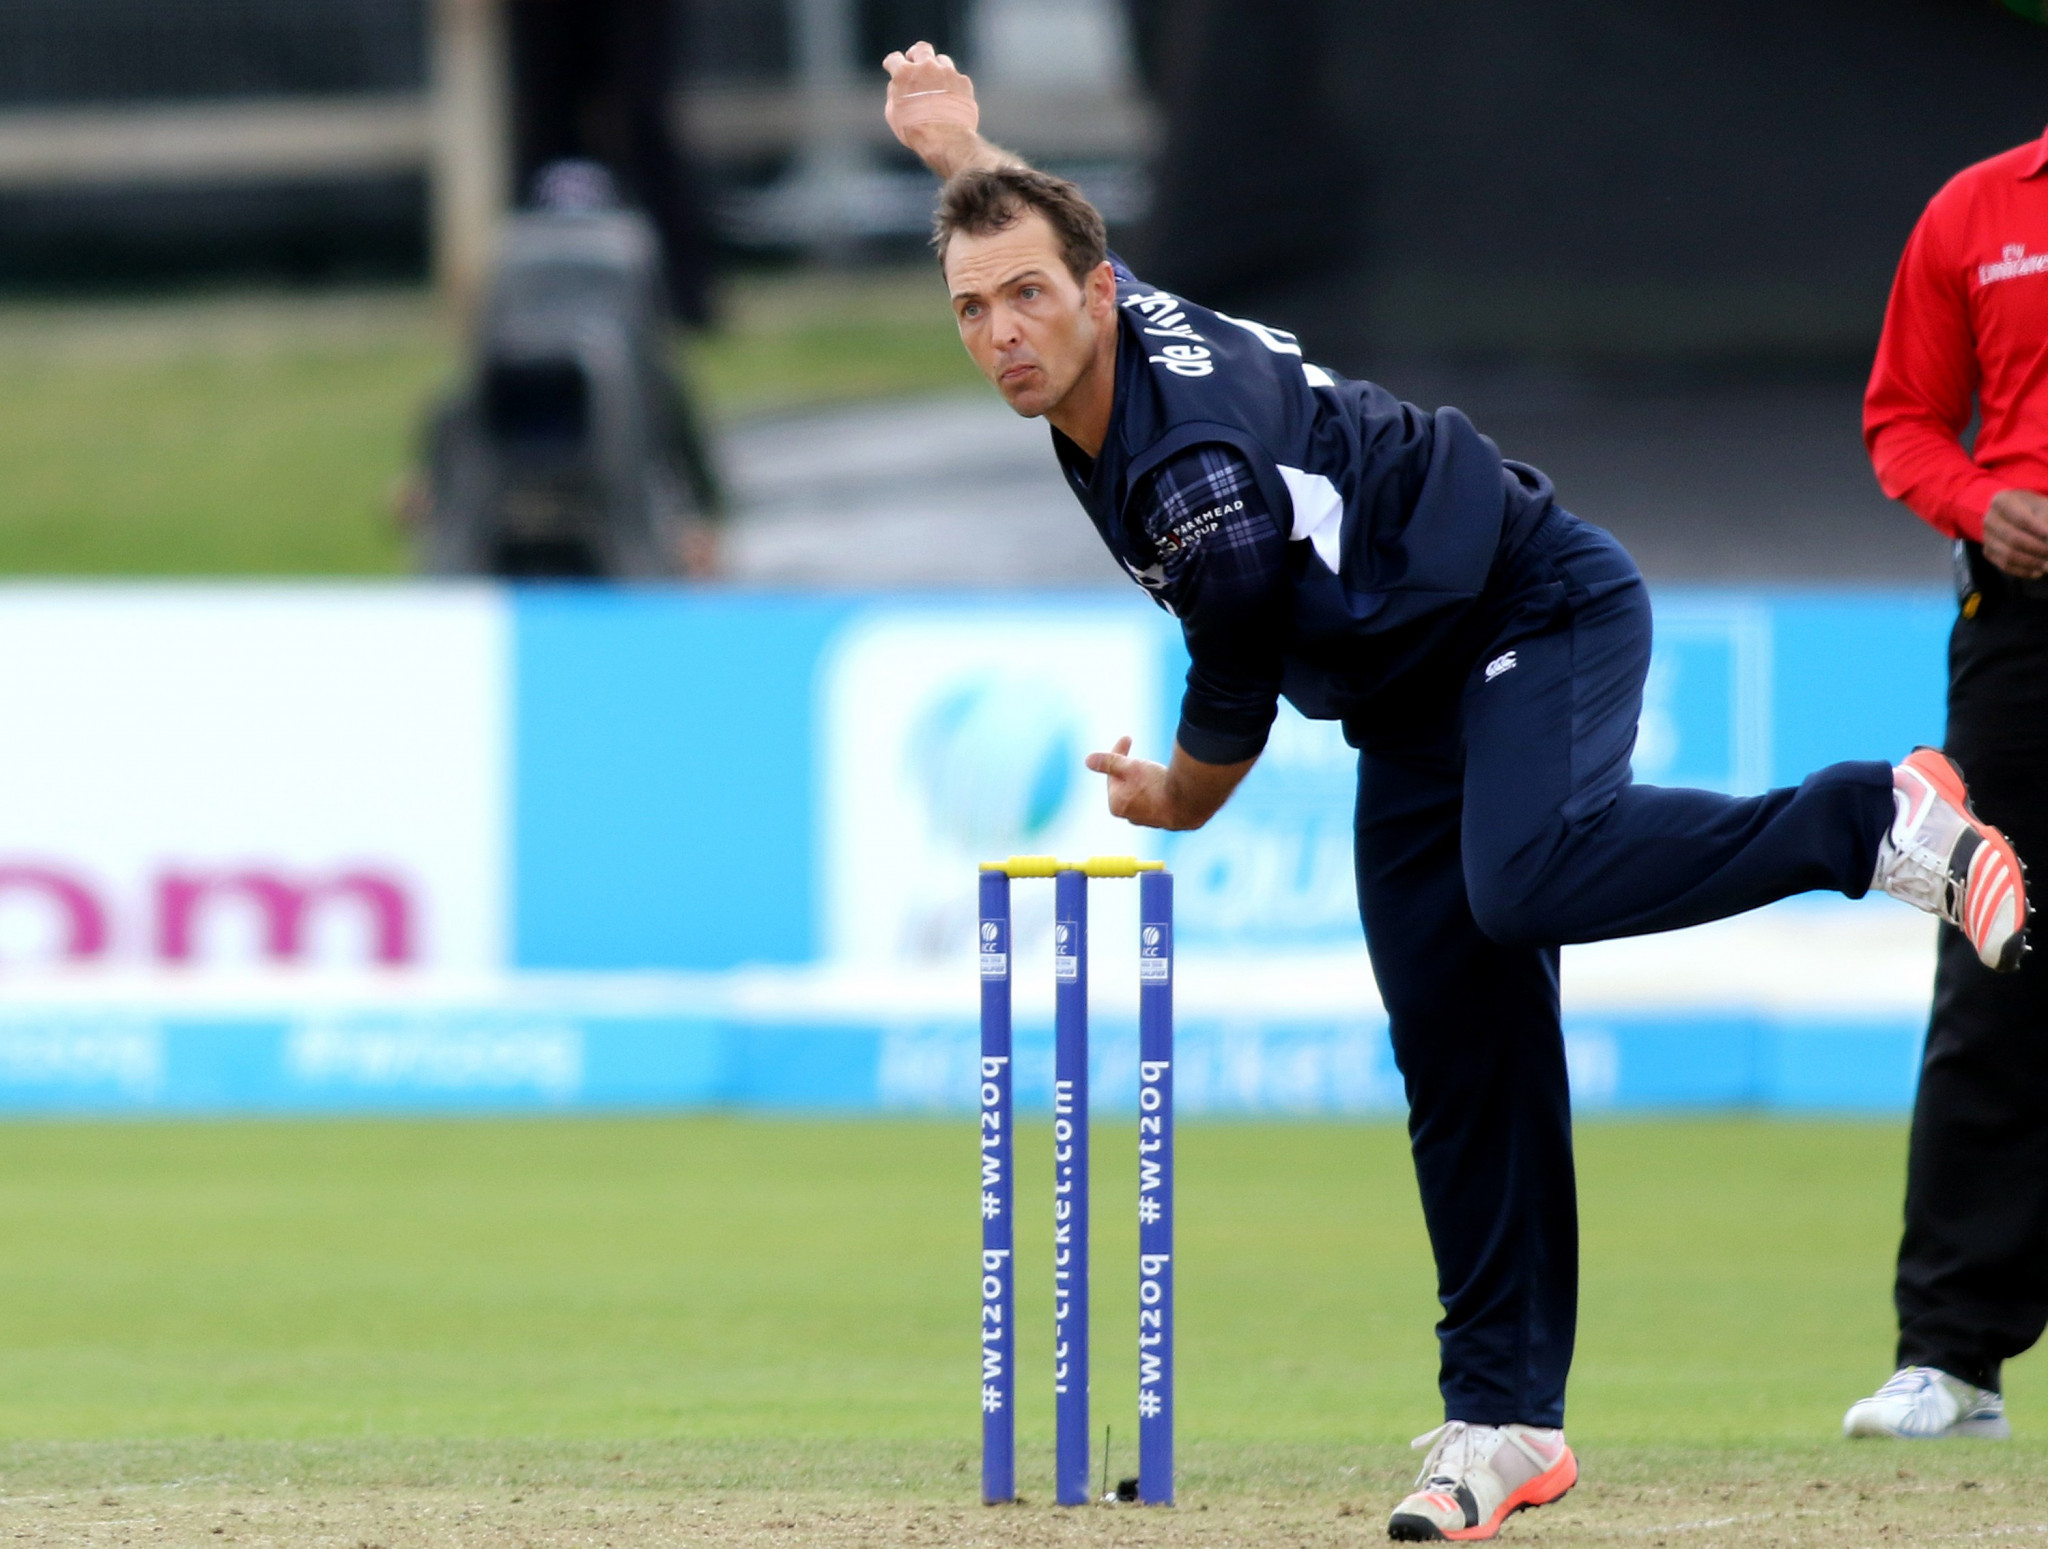 Con De Lange scored the winning runs in Scotland's maiden win over a full ICC member ©Getty Images